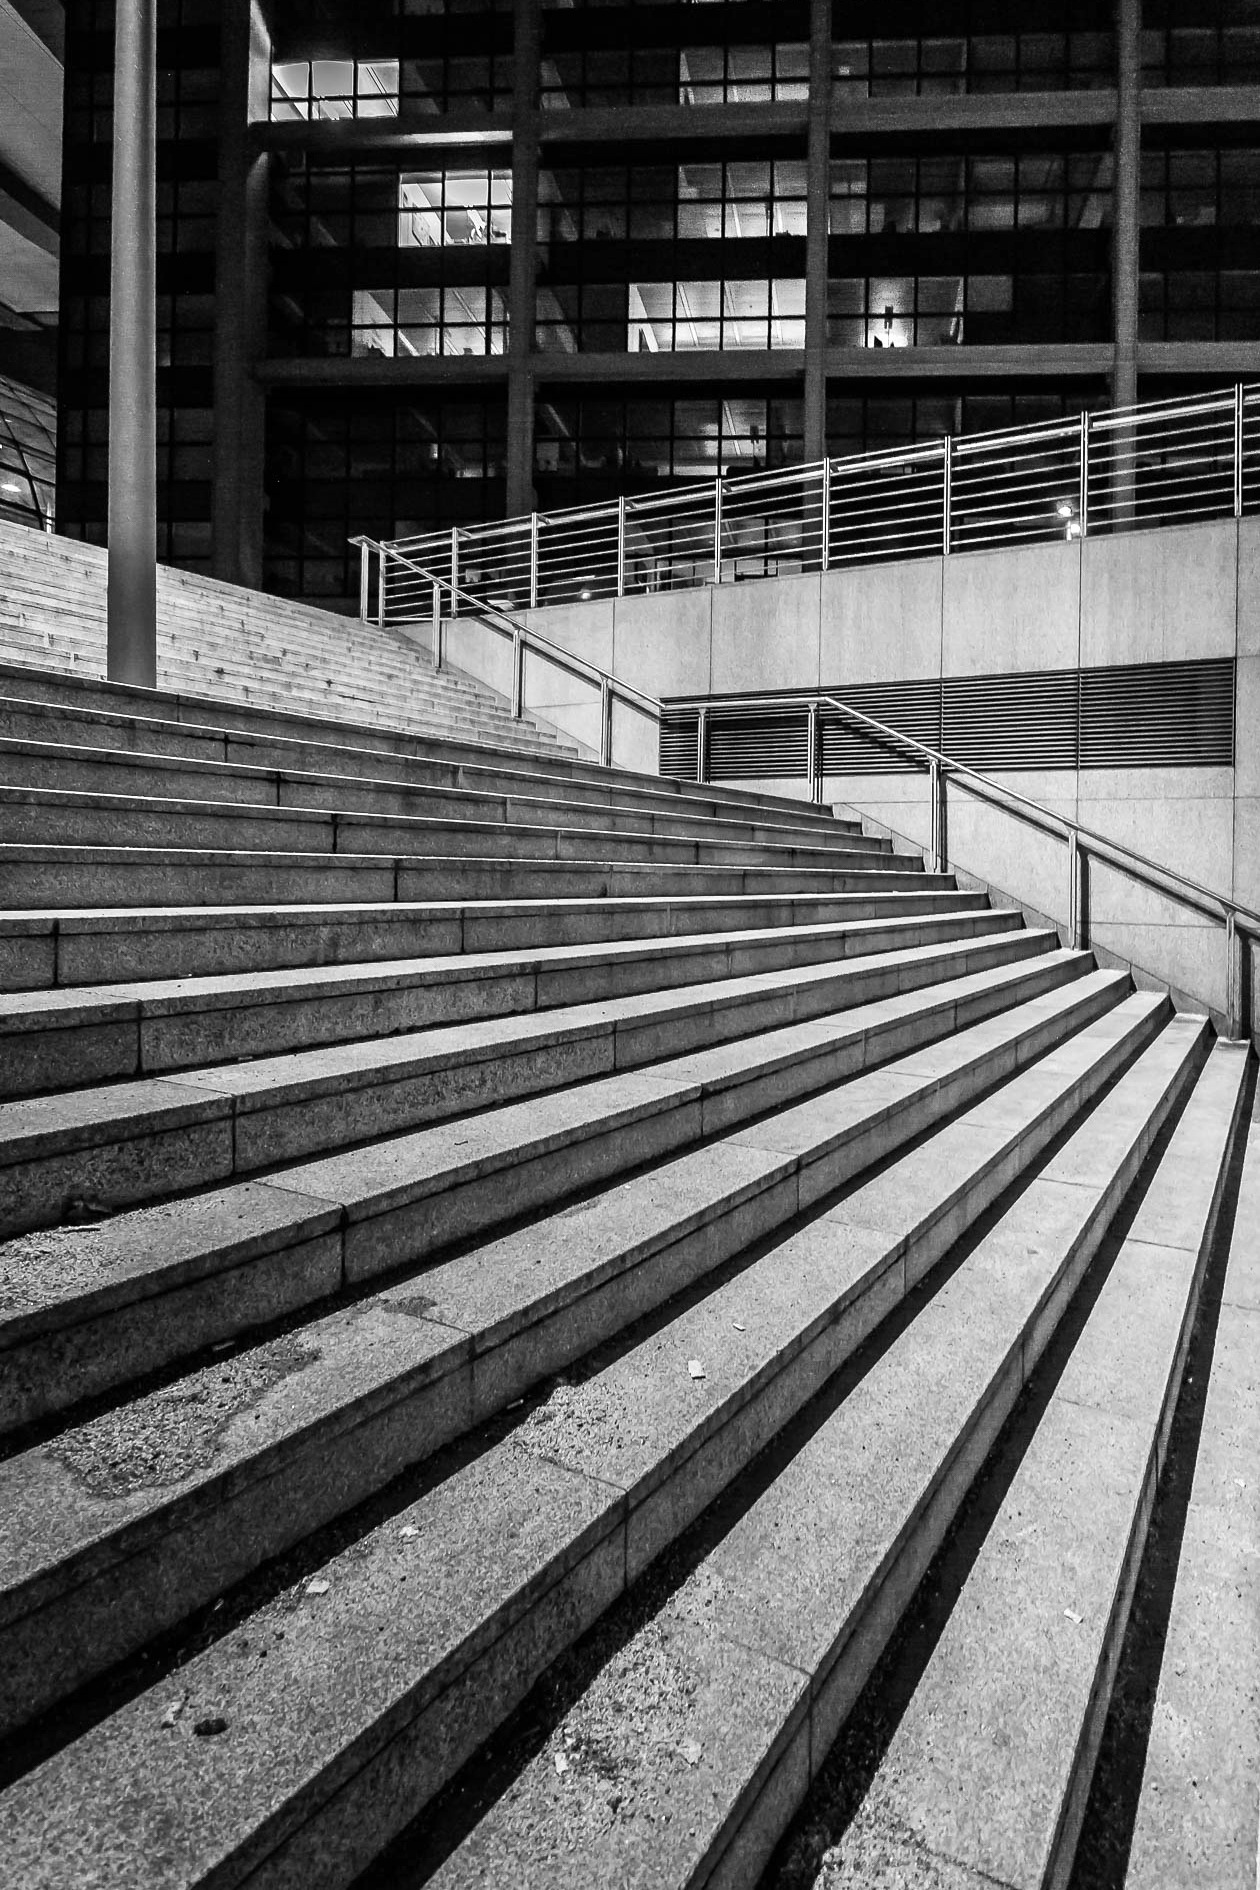 Stairs by JeckstadtPhotography